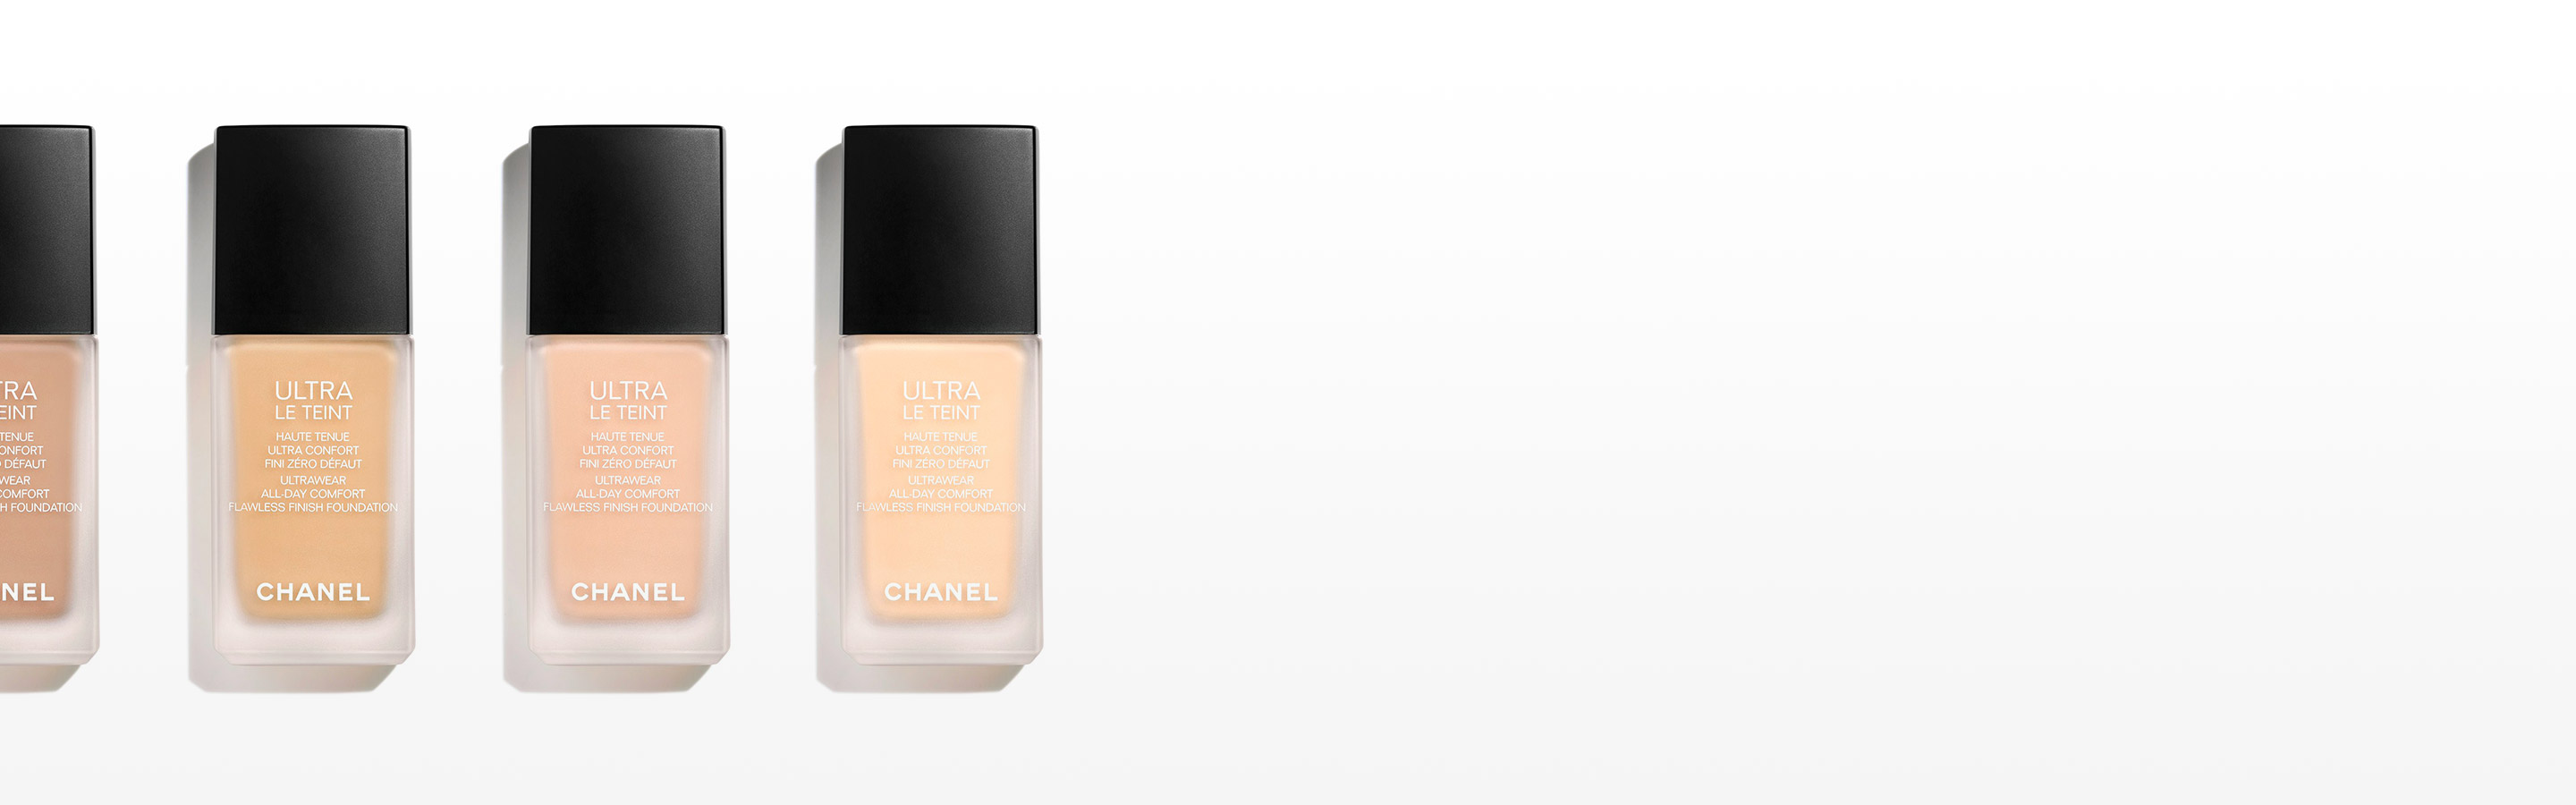 Fonds de Teint - CHANEL